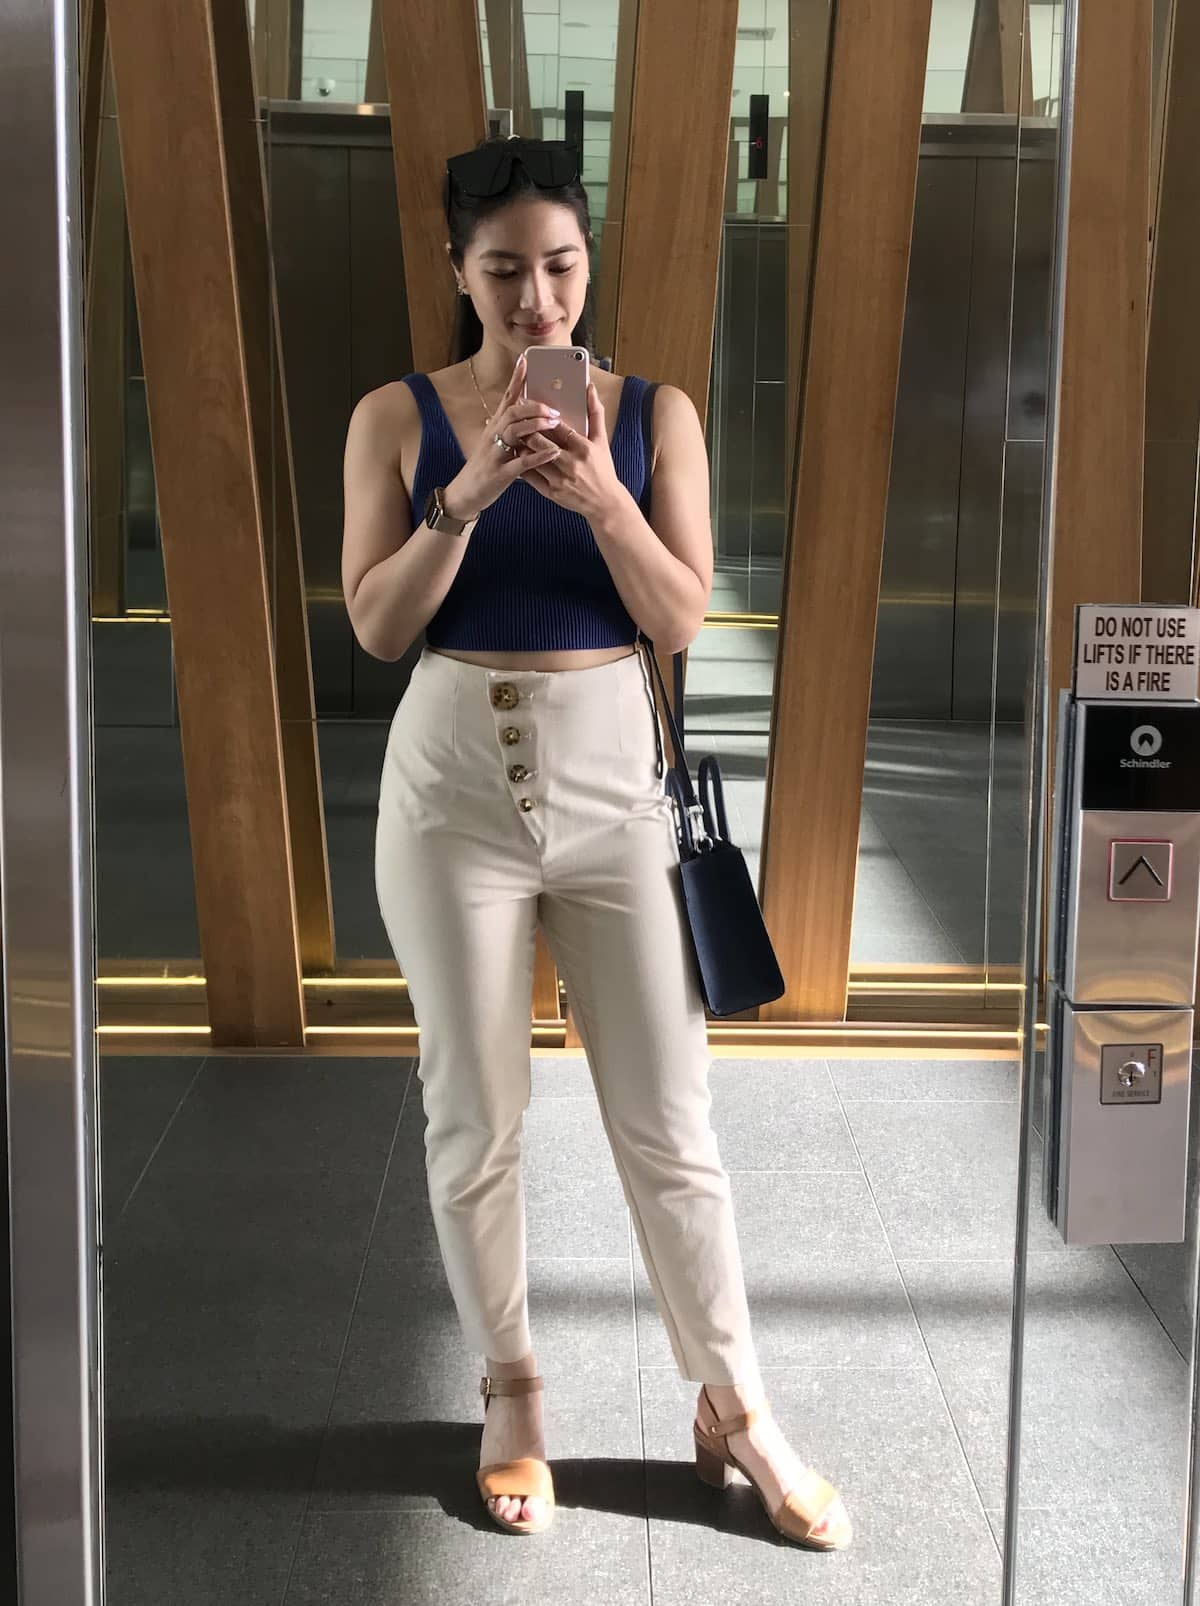 A woman wearing a navy top and beige pants, taking a selfie in a mirror. She has dark sunglasses on top of her head and is also wearing tan sandals.